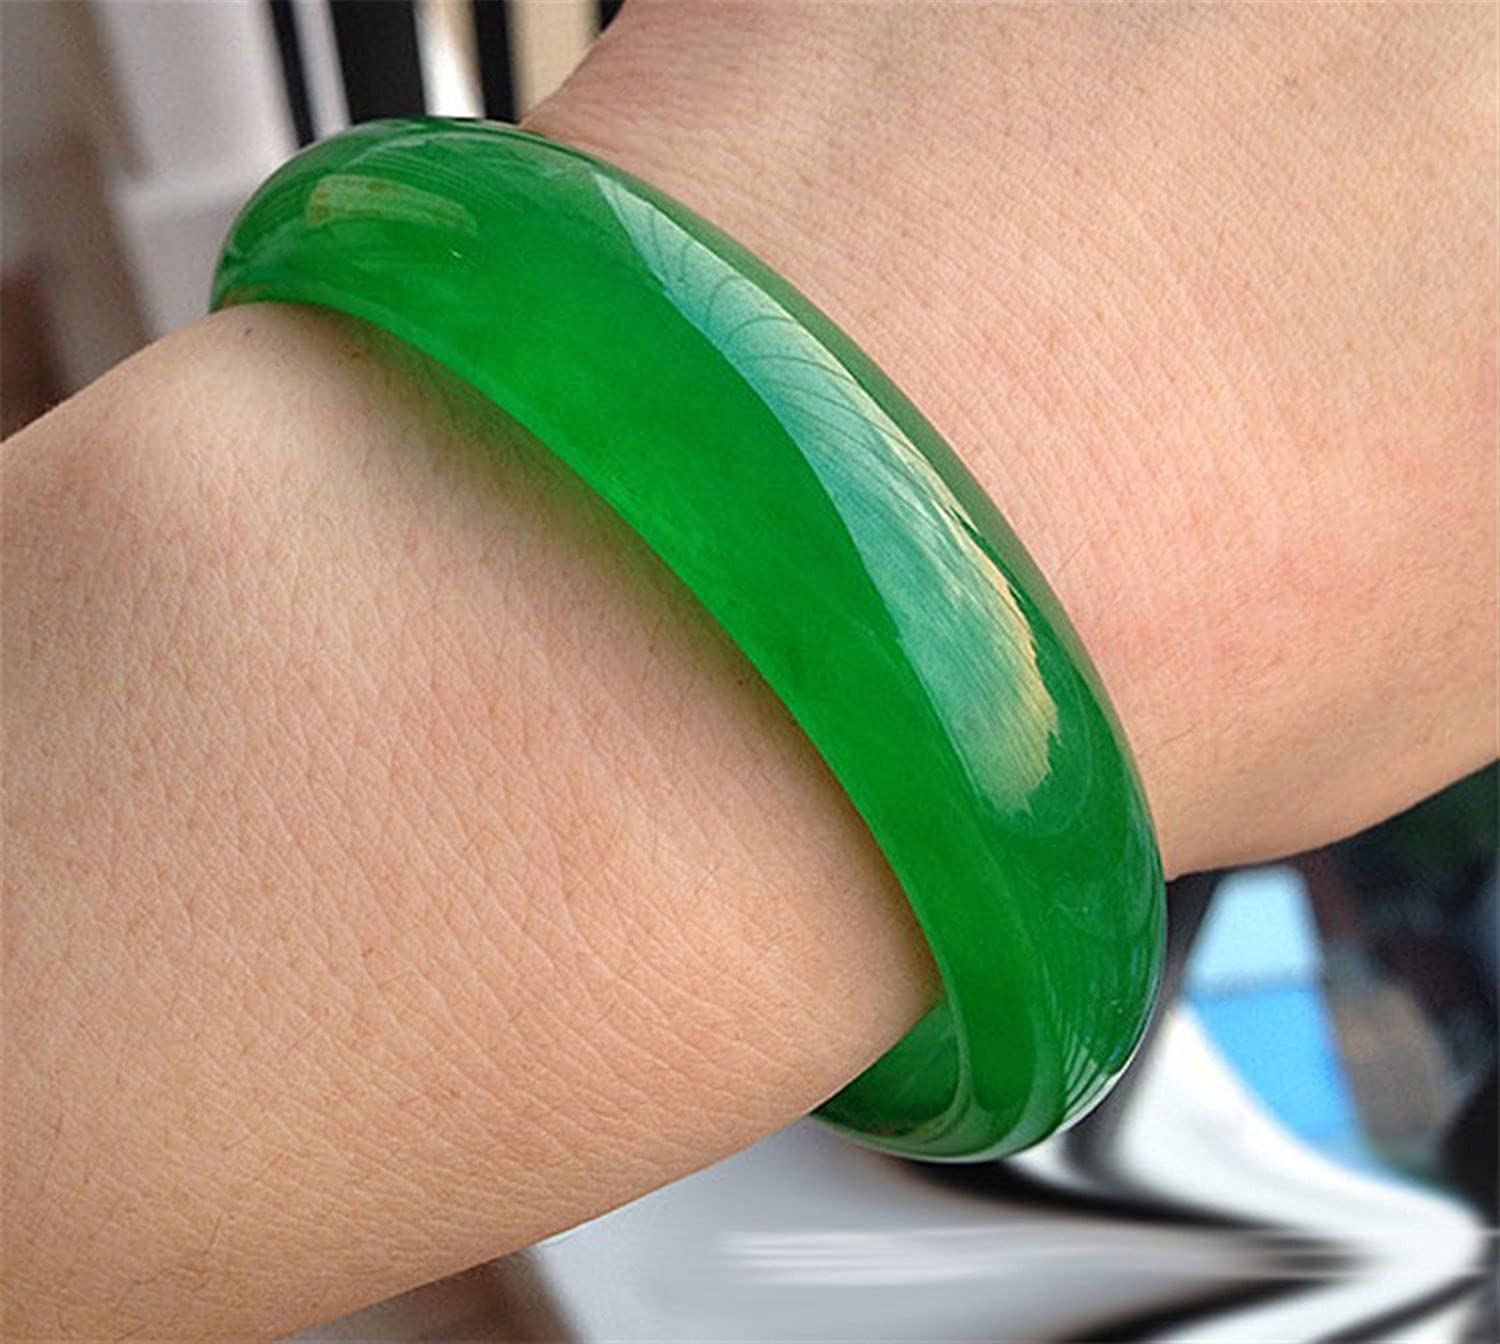 boutique bangles bangle natural com alibaba indian yewelry bracelet quartzite aa gift green item imitation jewelry in quality bracelets jade from accessories cargo included certificate myanmar wide on fashion stone aliexpress high genuine a